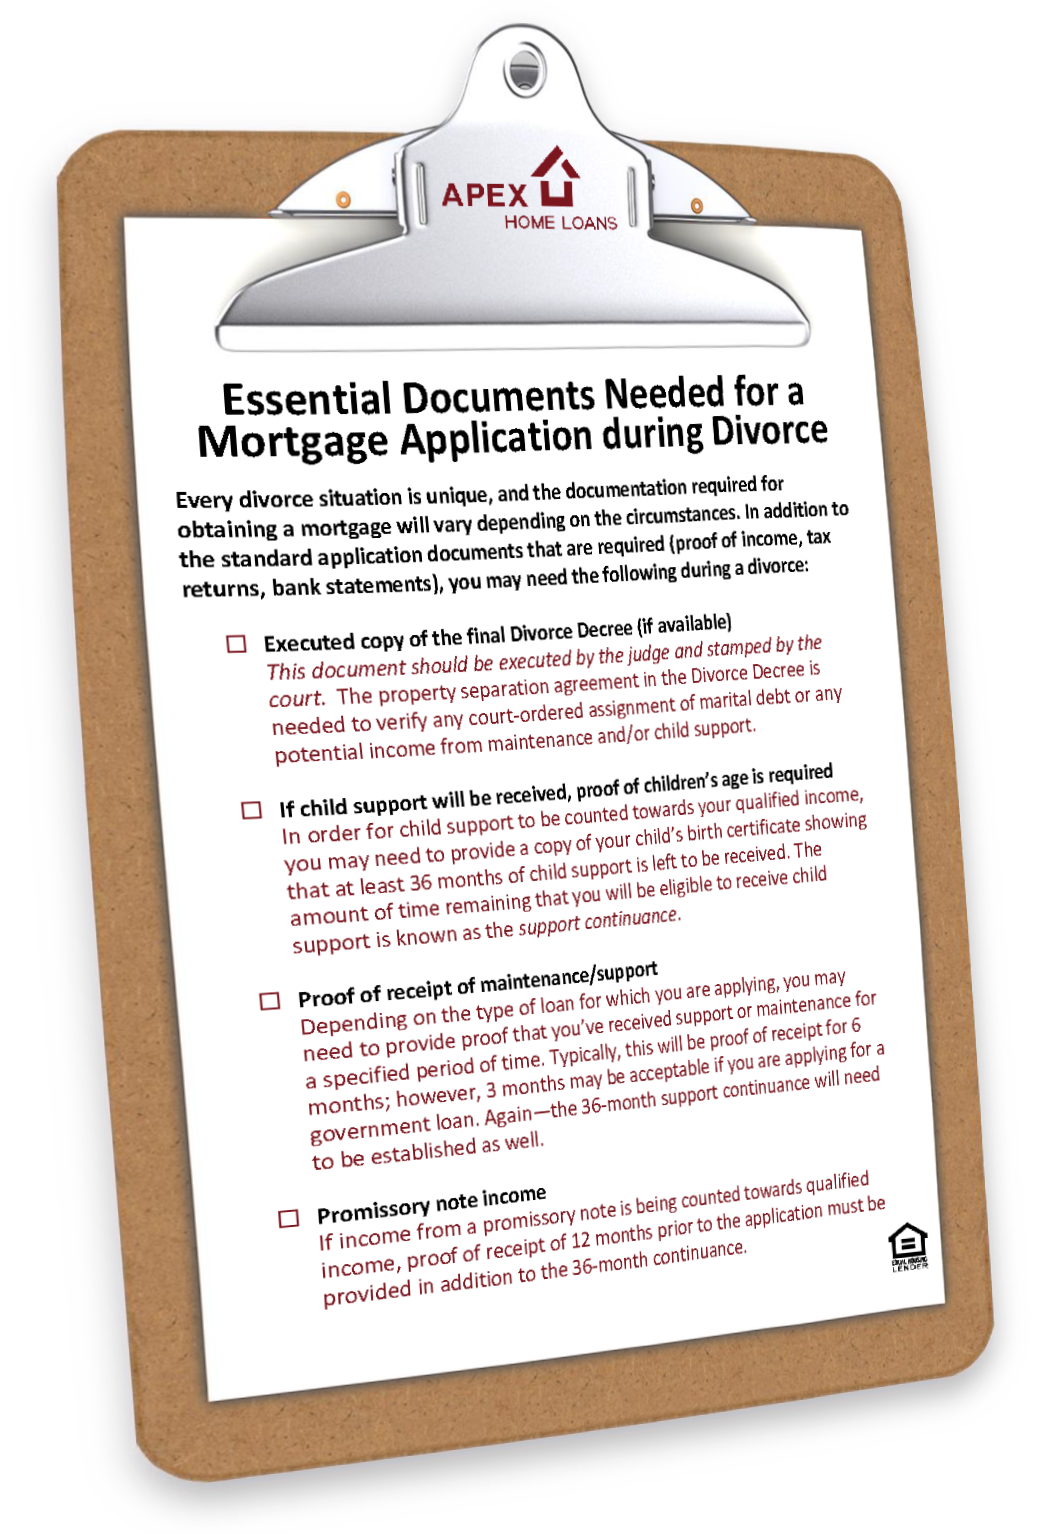 Documents Needed for a Mortgage Application during Divorce